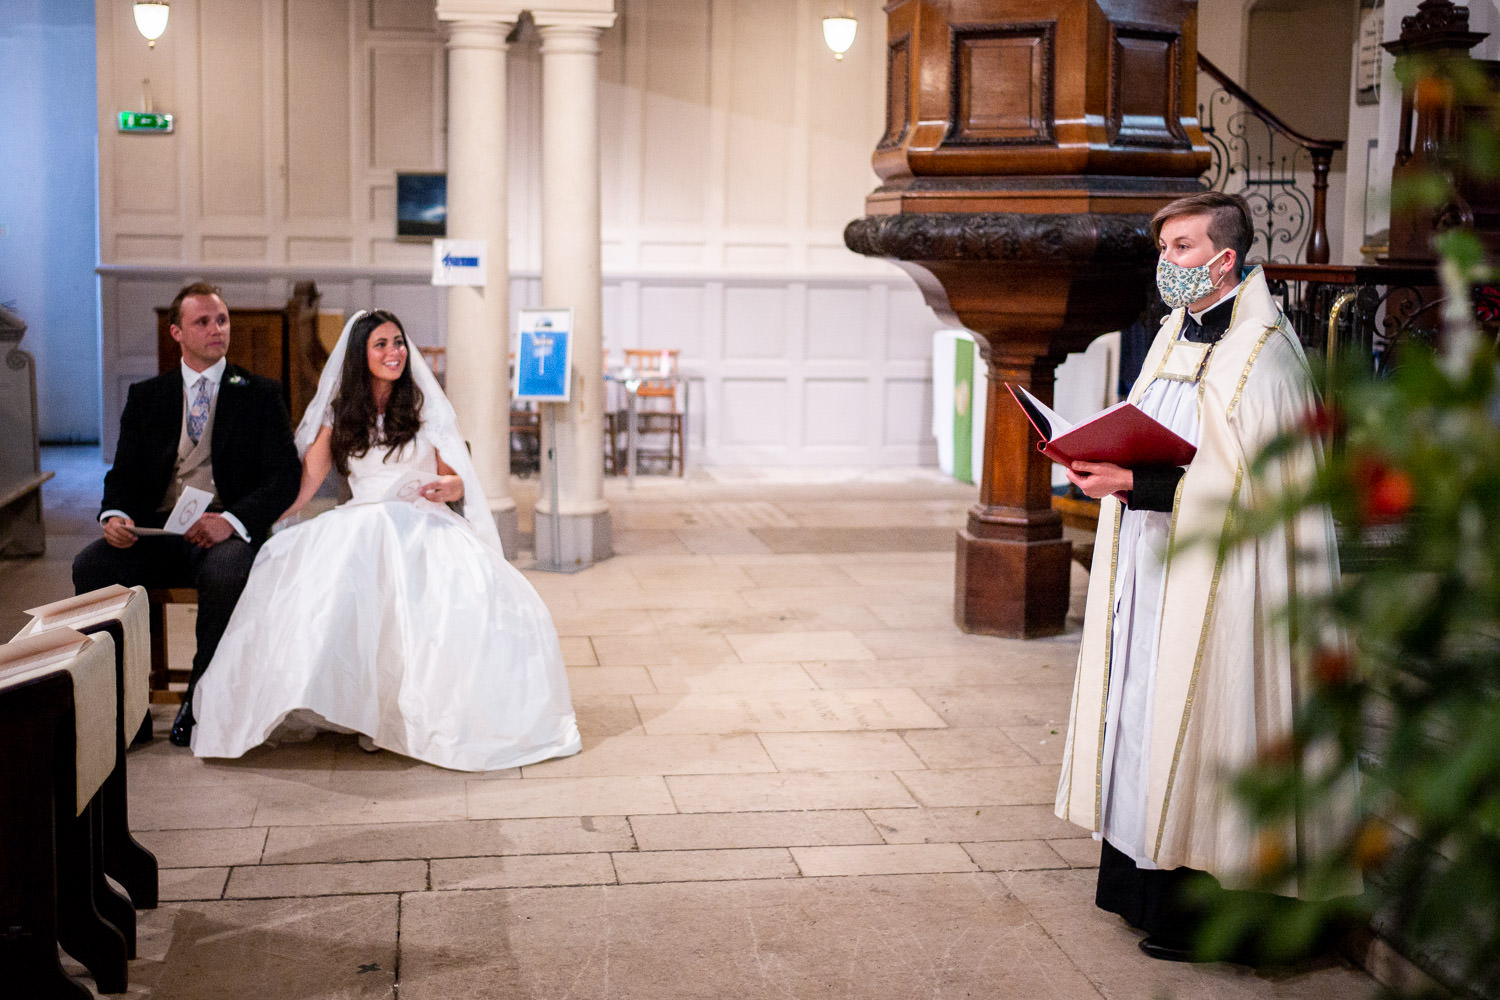 Vicar photographed during wedding ceremony wearing face mask in London church